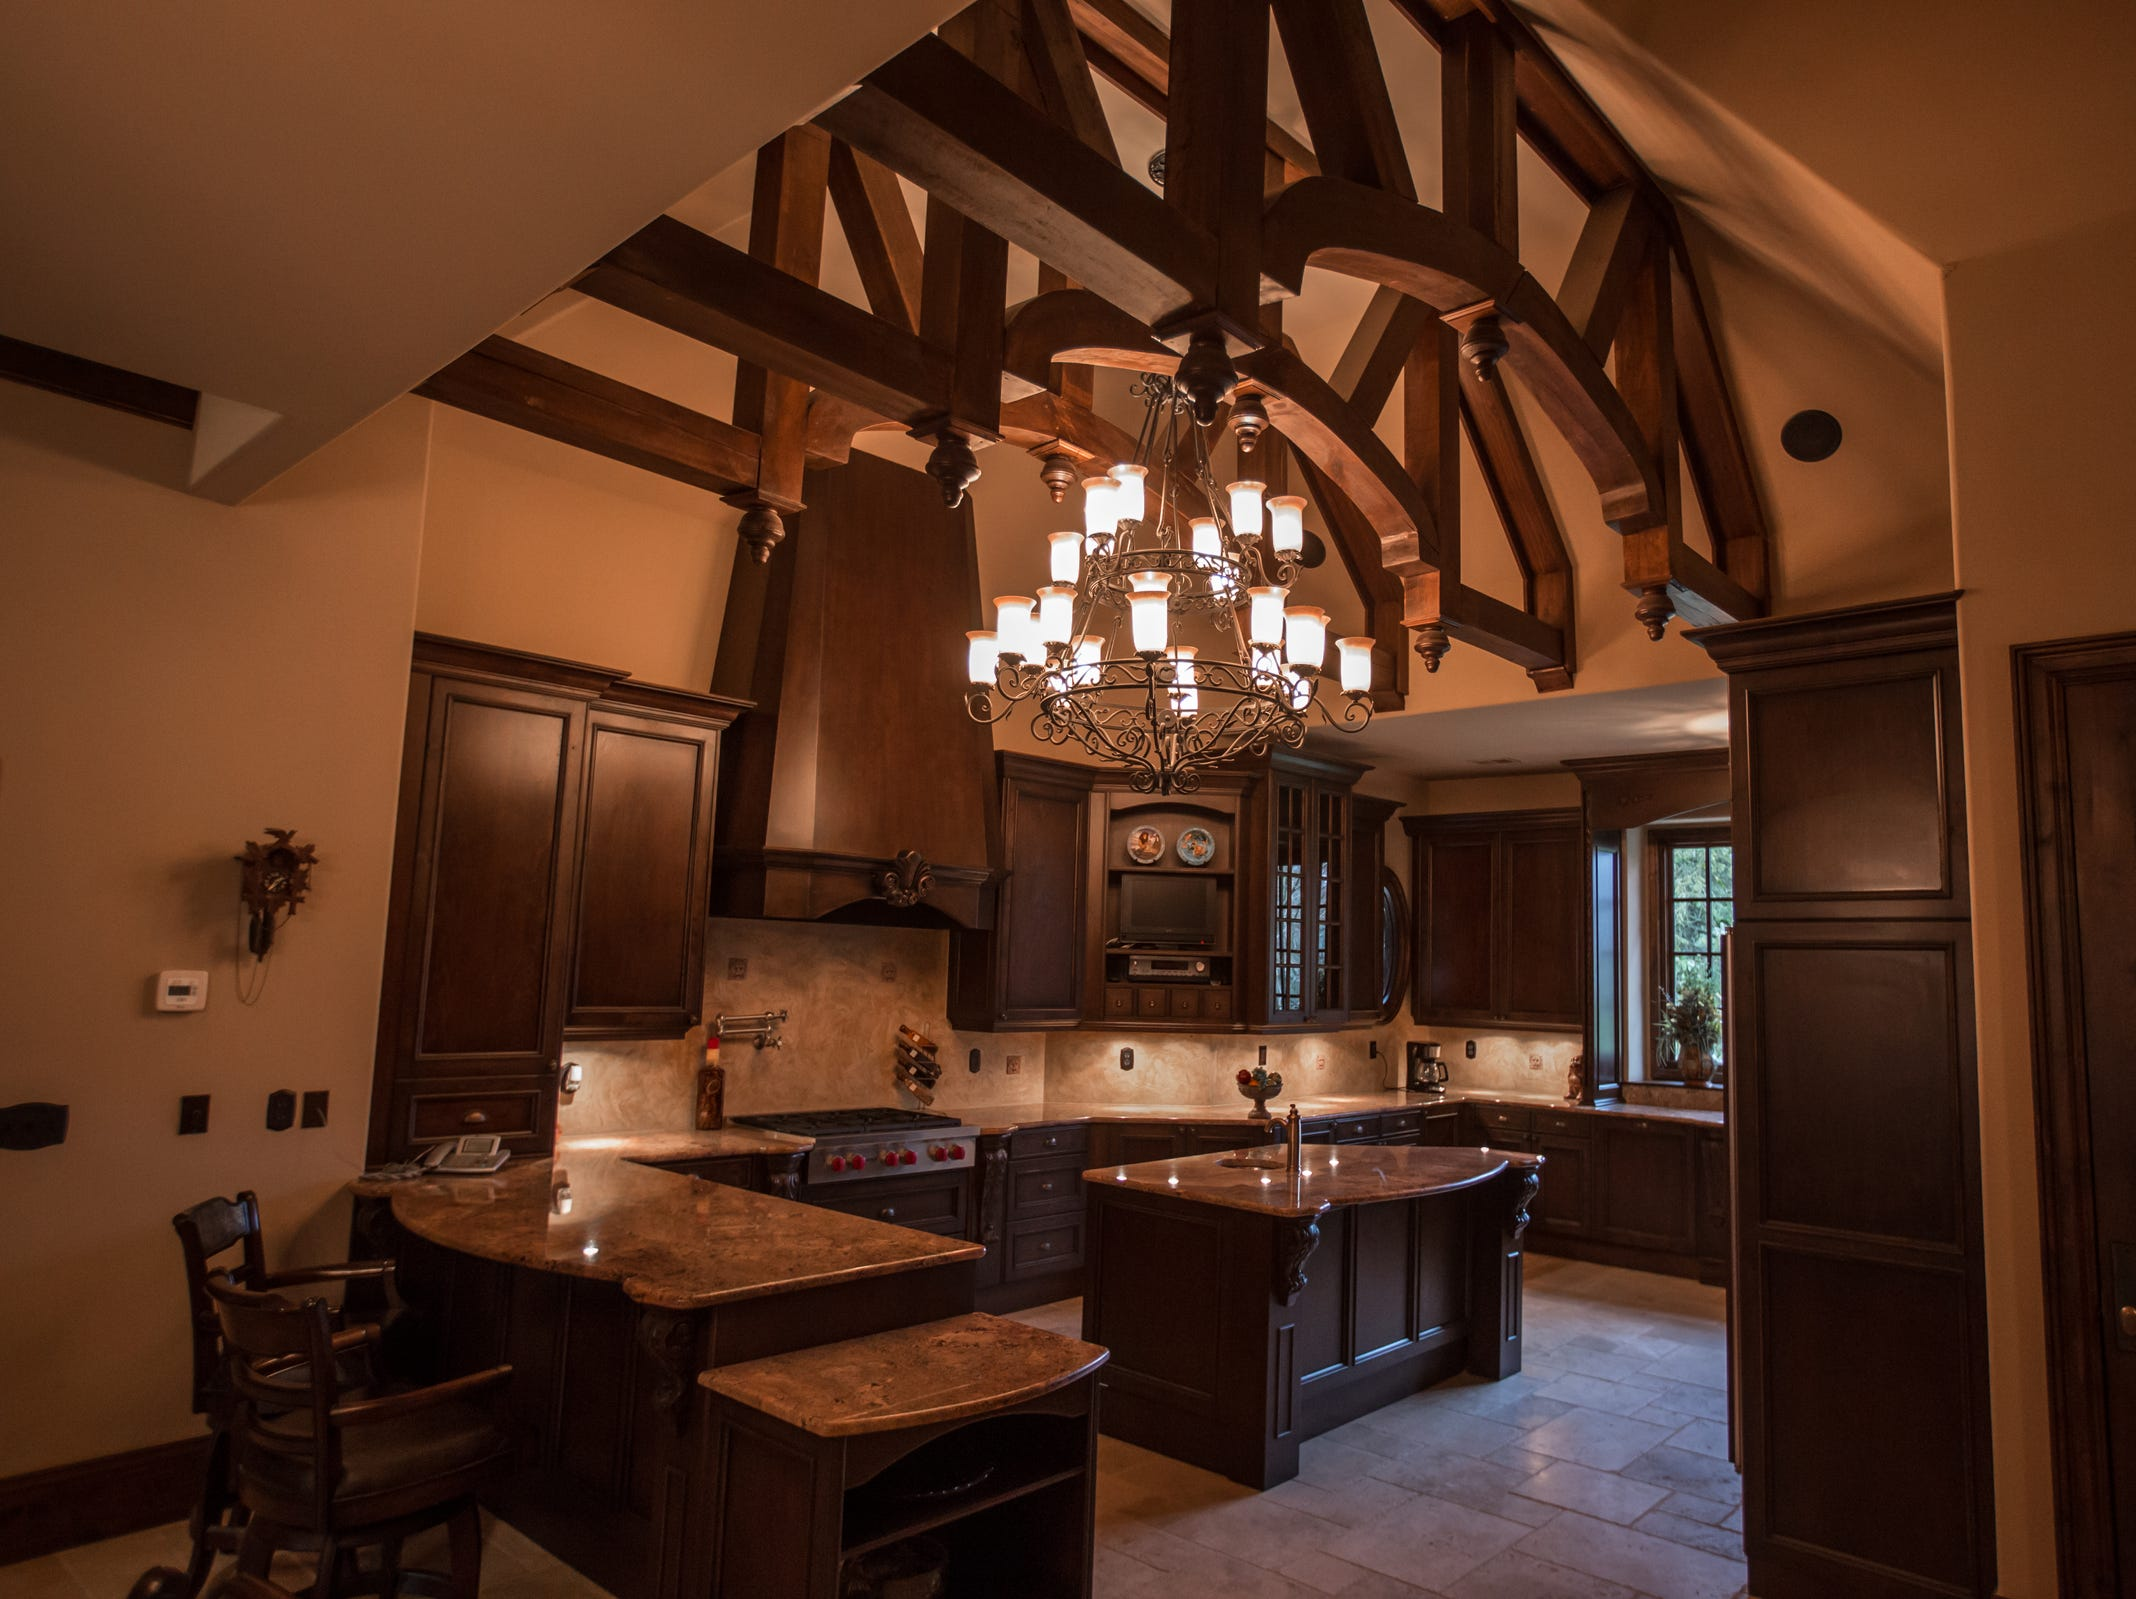 The kitchen ceiling is raised under one of the roof peaks, and filled with a pattern made of beams. Appliances are Wolf, Sub-Zero, Bosch.